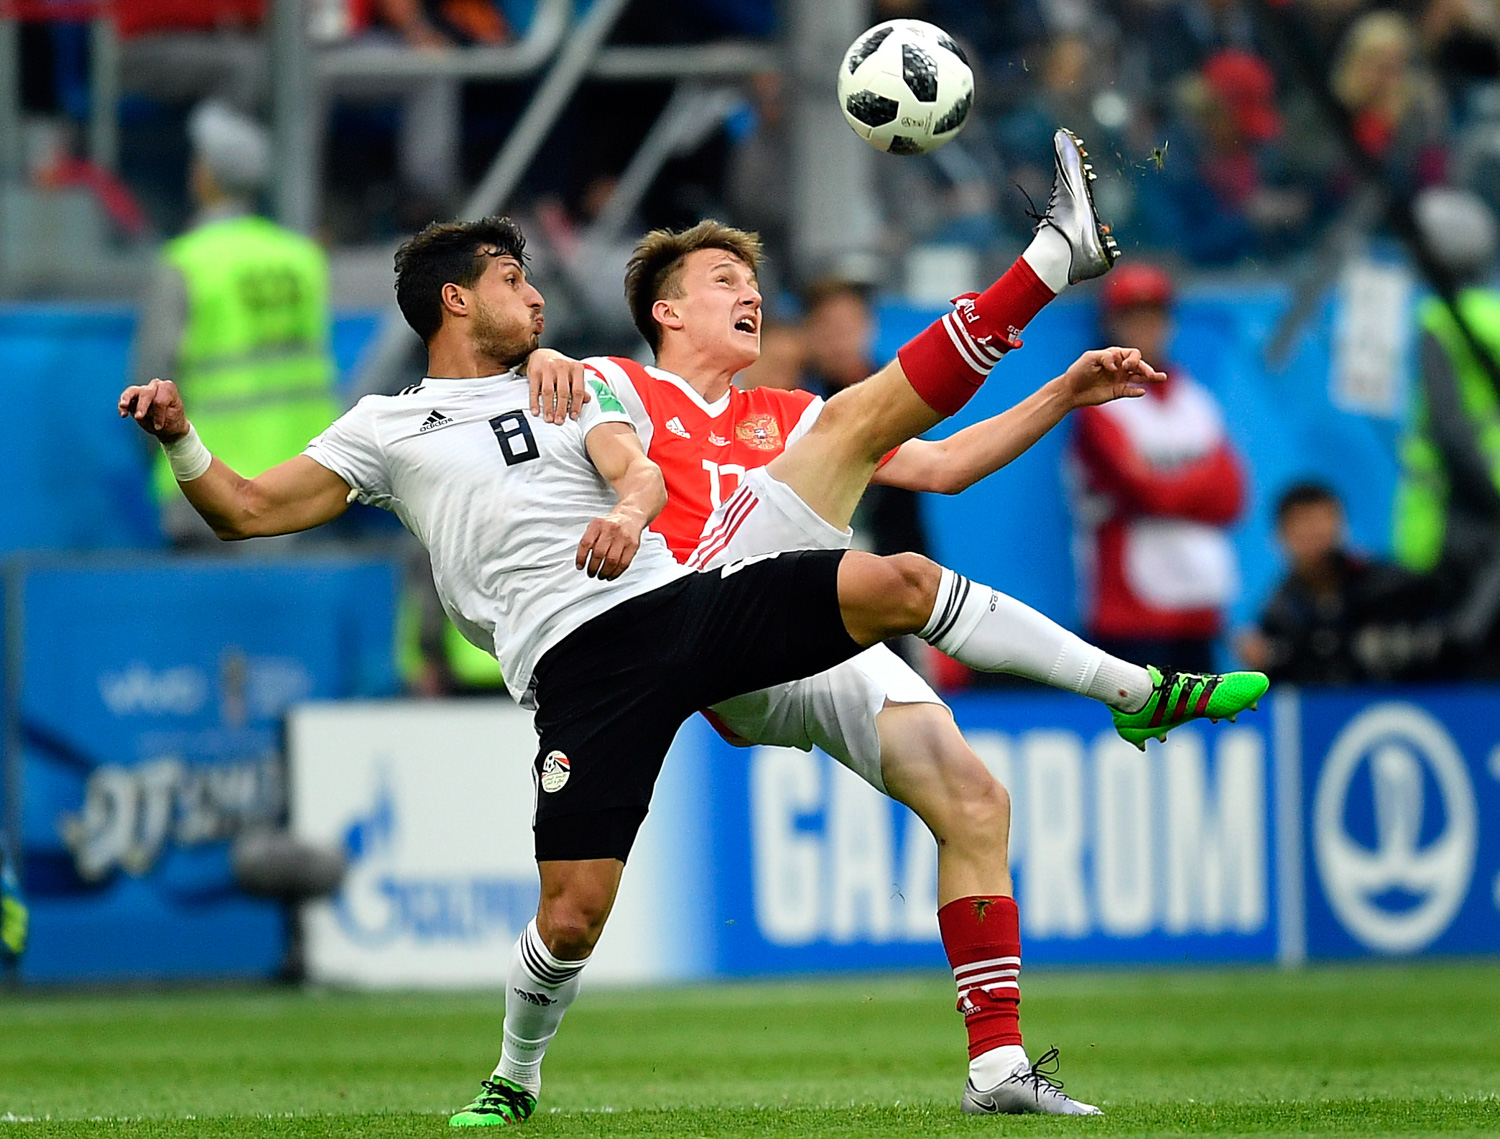 "<div class=""meta image-caption""><div class=""origin-logo origin-image none""><span>none</span></div><span class=""caption-text"">Egypt's Tarek Hamed, left, and Russia's Alexander Golovin compete for the ball during the group A match between Russia and Egypt (Martin Meissner/AP)</span></div>"